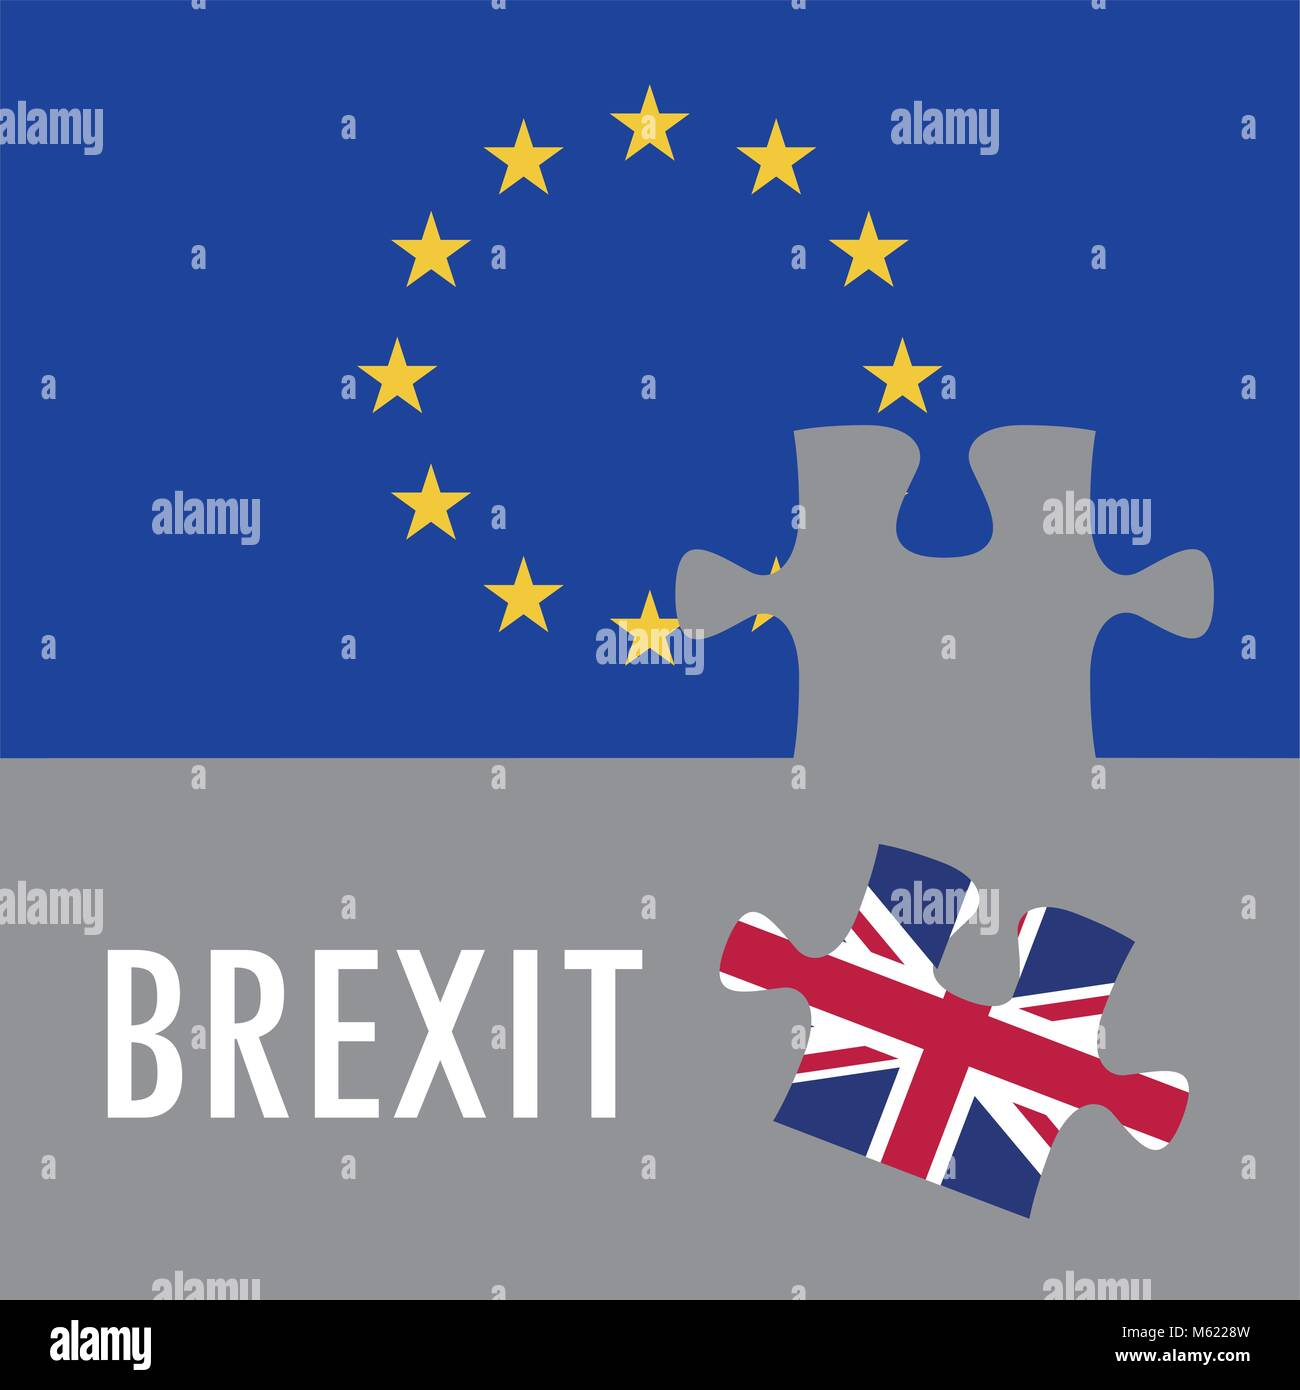 the causes and consequences of the great britain exiting the european union Investors will ask whether, in the light of the brexit shock, eurozone governments have the political will and public support to strengthen the architecture of european monetary union one test will be whether europe's banking union, including a plan for common deposit insurance, makes progress over the next 12 months at present it is blocked.